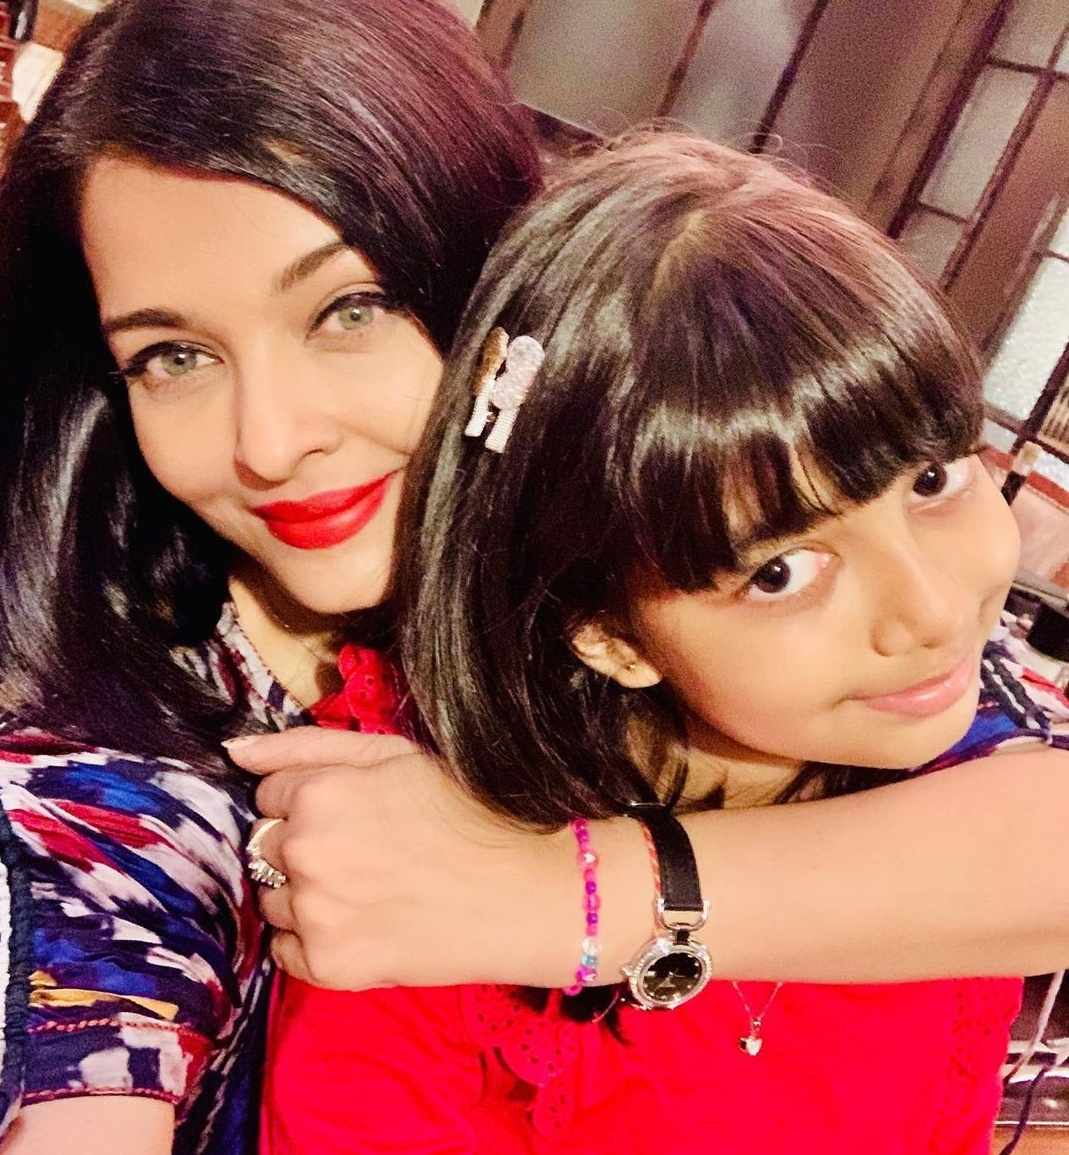 Covid 19: Aishwarya Rai Bachchan, daughter Aaradhya admitted to Nanavati Hospital...